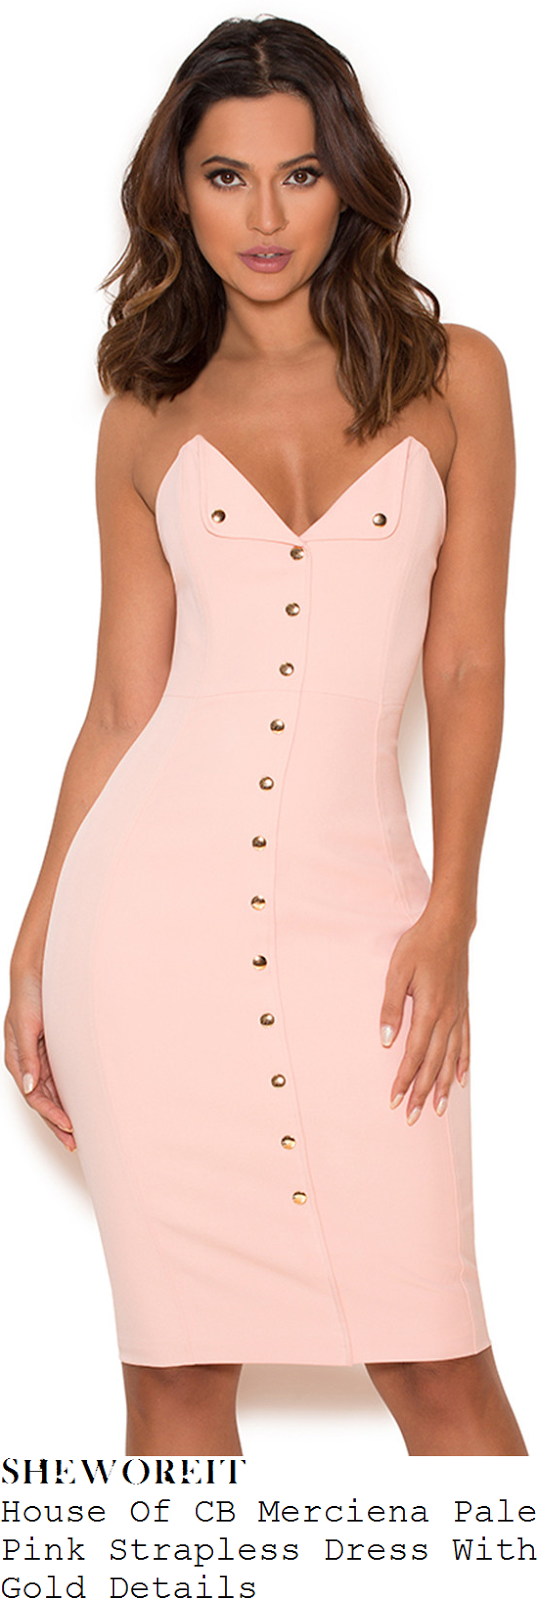 vicky-pattison-house-of-cb-merciena-pale-pink-and-gold-strapless-button-up-fold-bust-detail-bodycon-dress